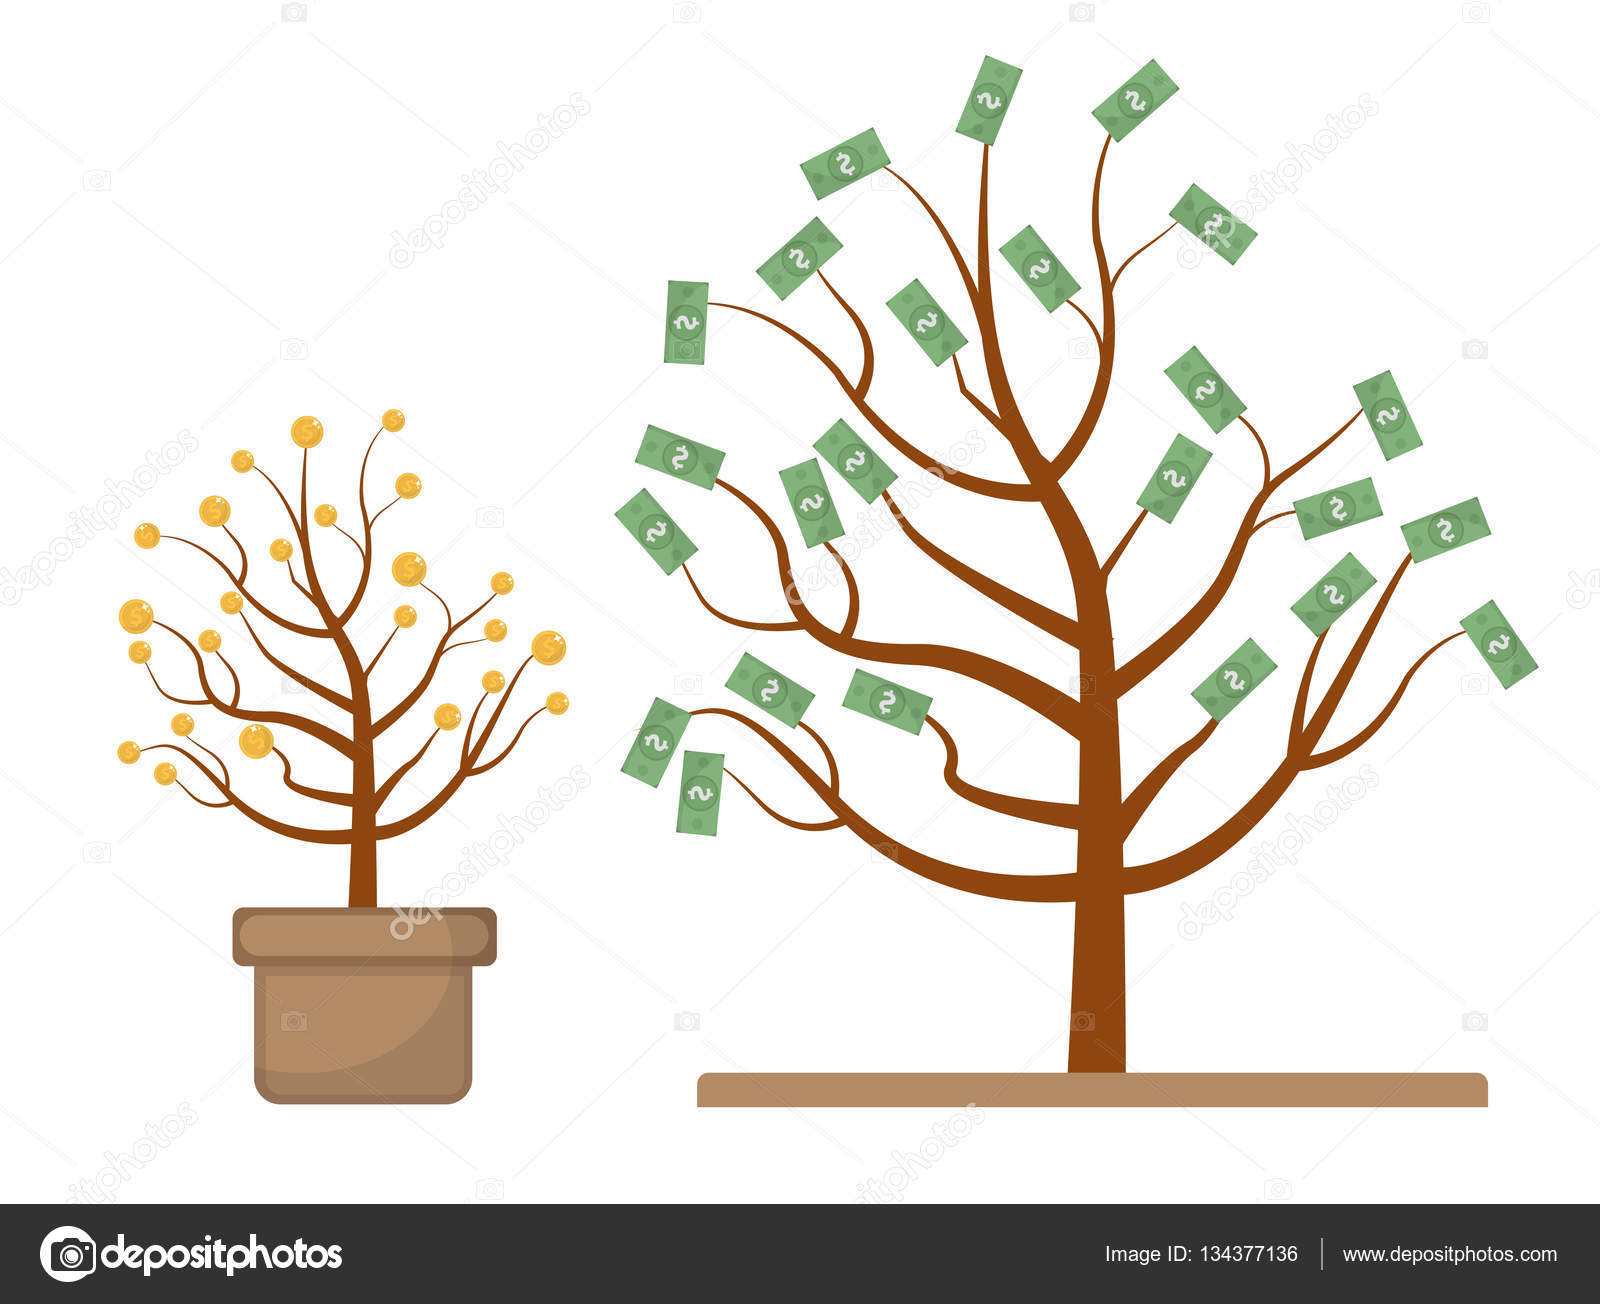 Tree with money. Coins and dollars. Evolution, growth, progressive.